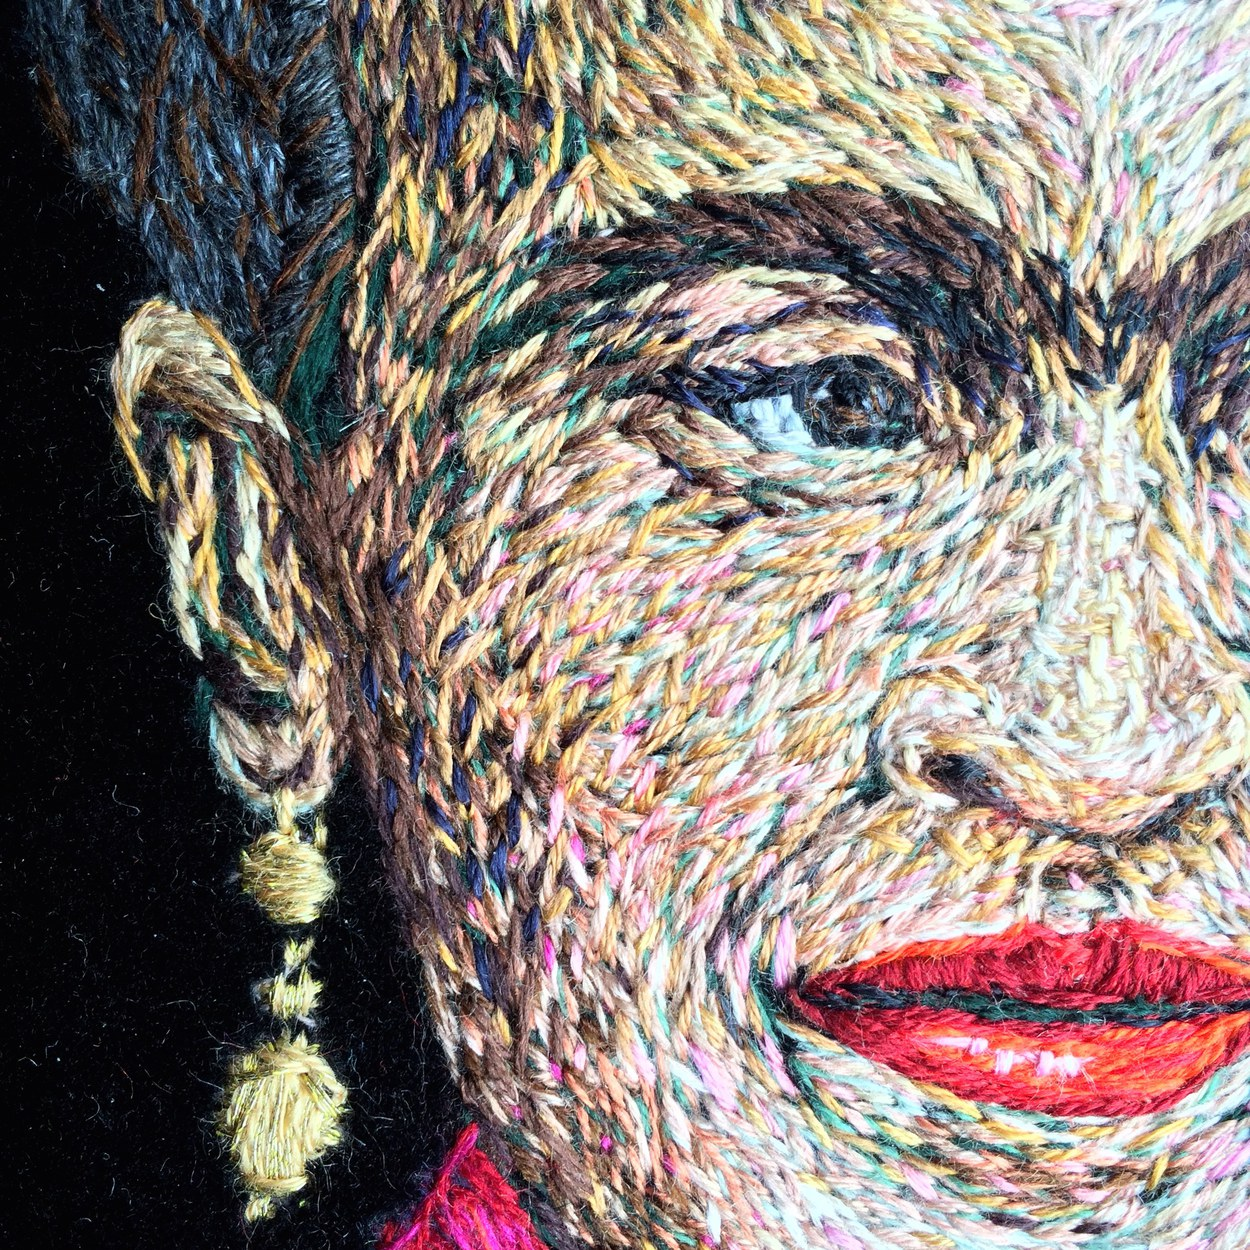 Diego's Chica (portrait of Frida) - detail